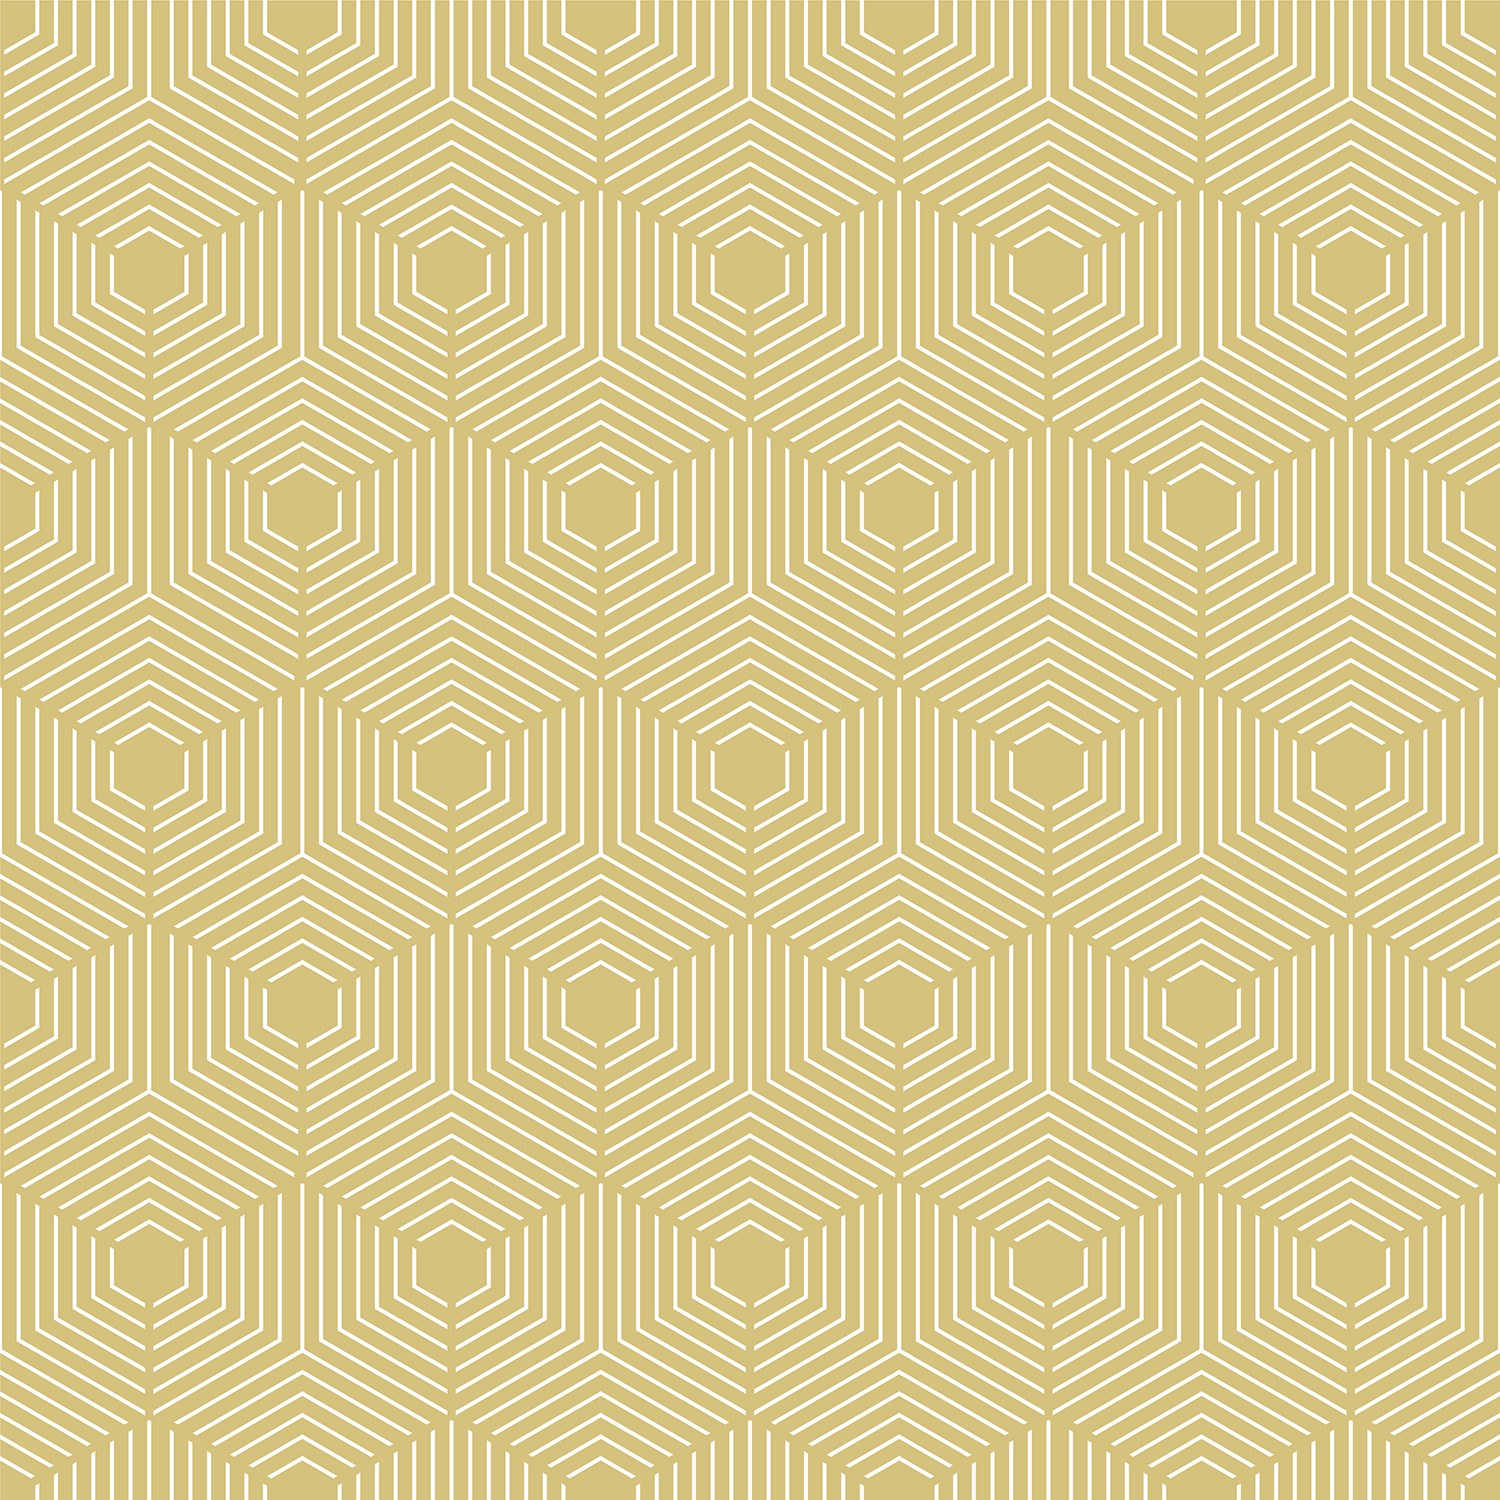 Seamless Patterns example image 3